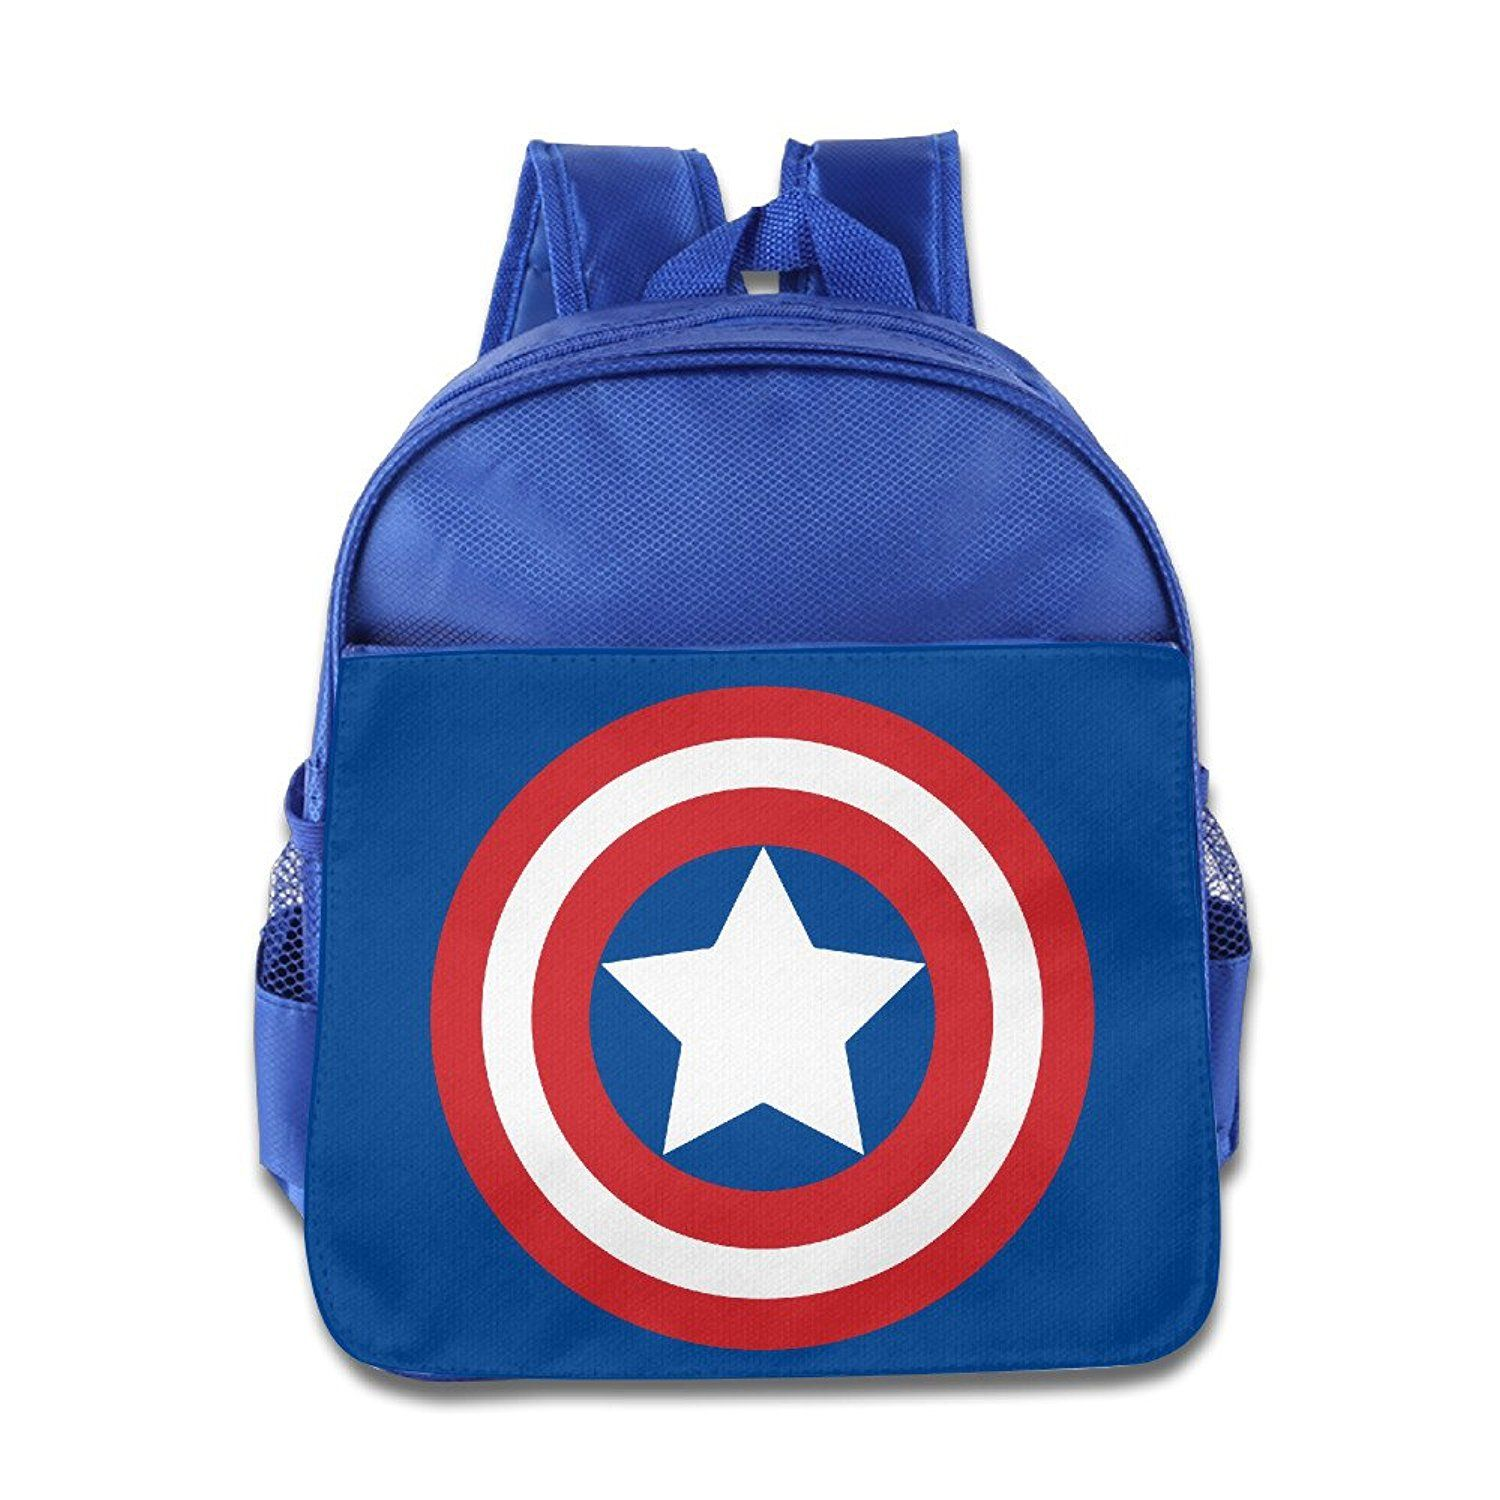 c7f698c29a Boys Girls Toddler Captain America Shield Backpack School Bag   You can  find more details by visiting the image link.